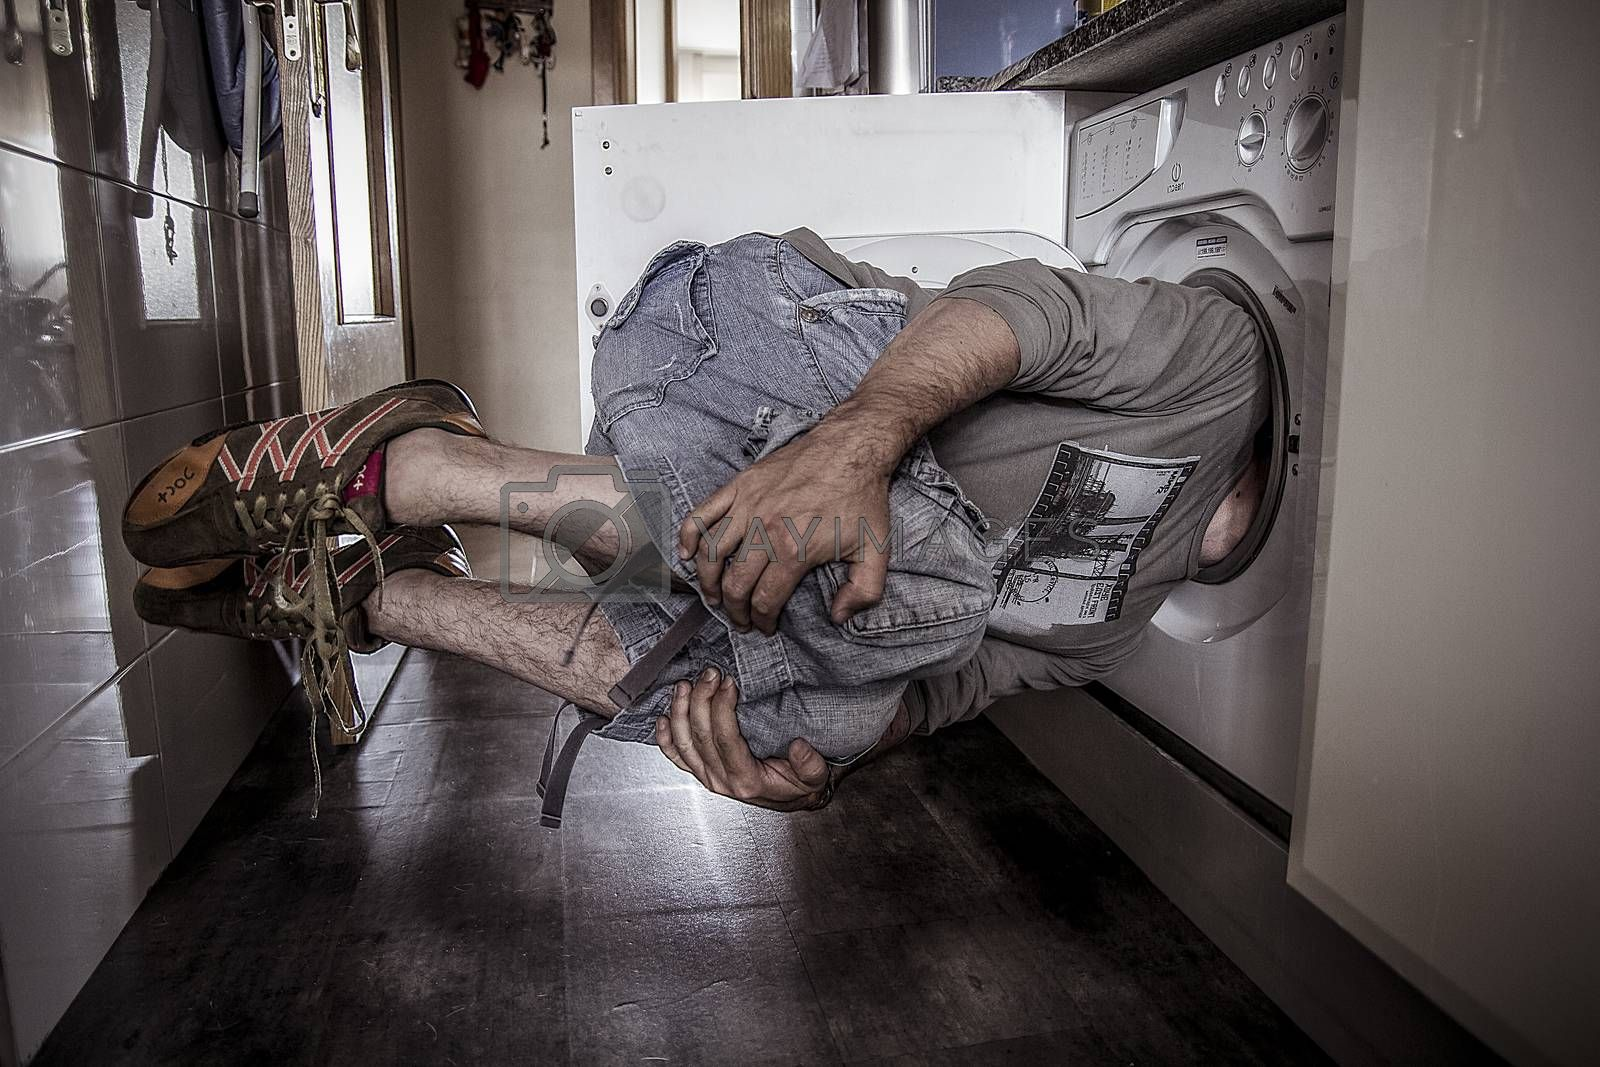 man flying with his head stuck in a washing machine